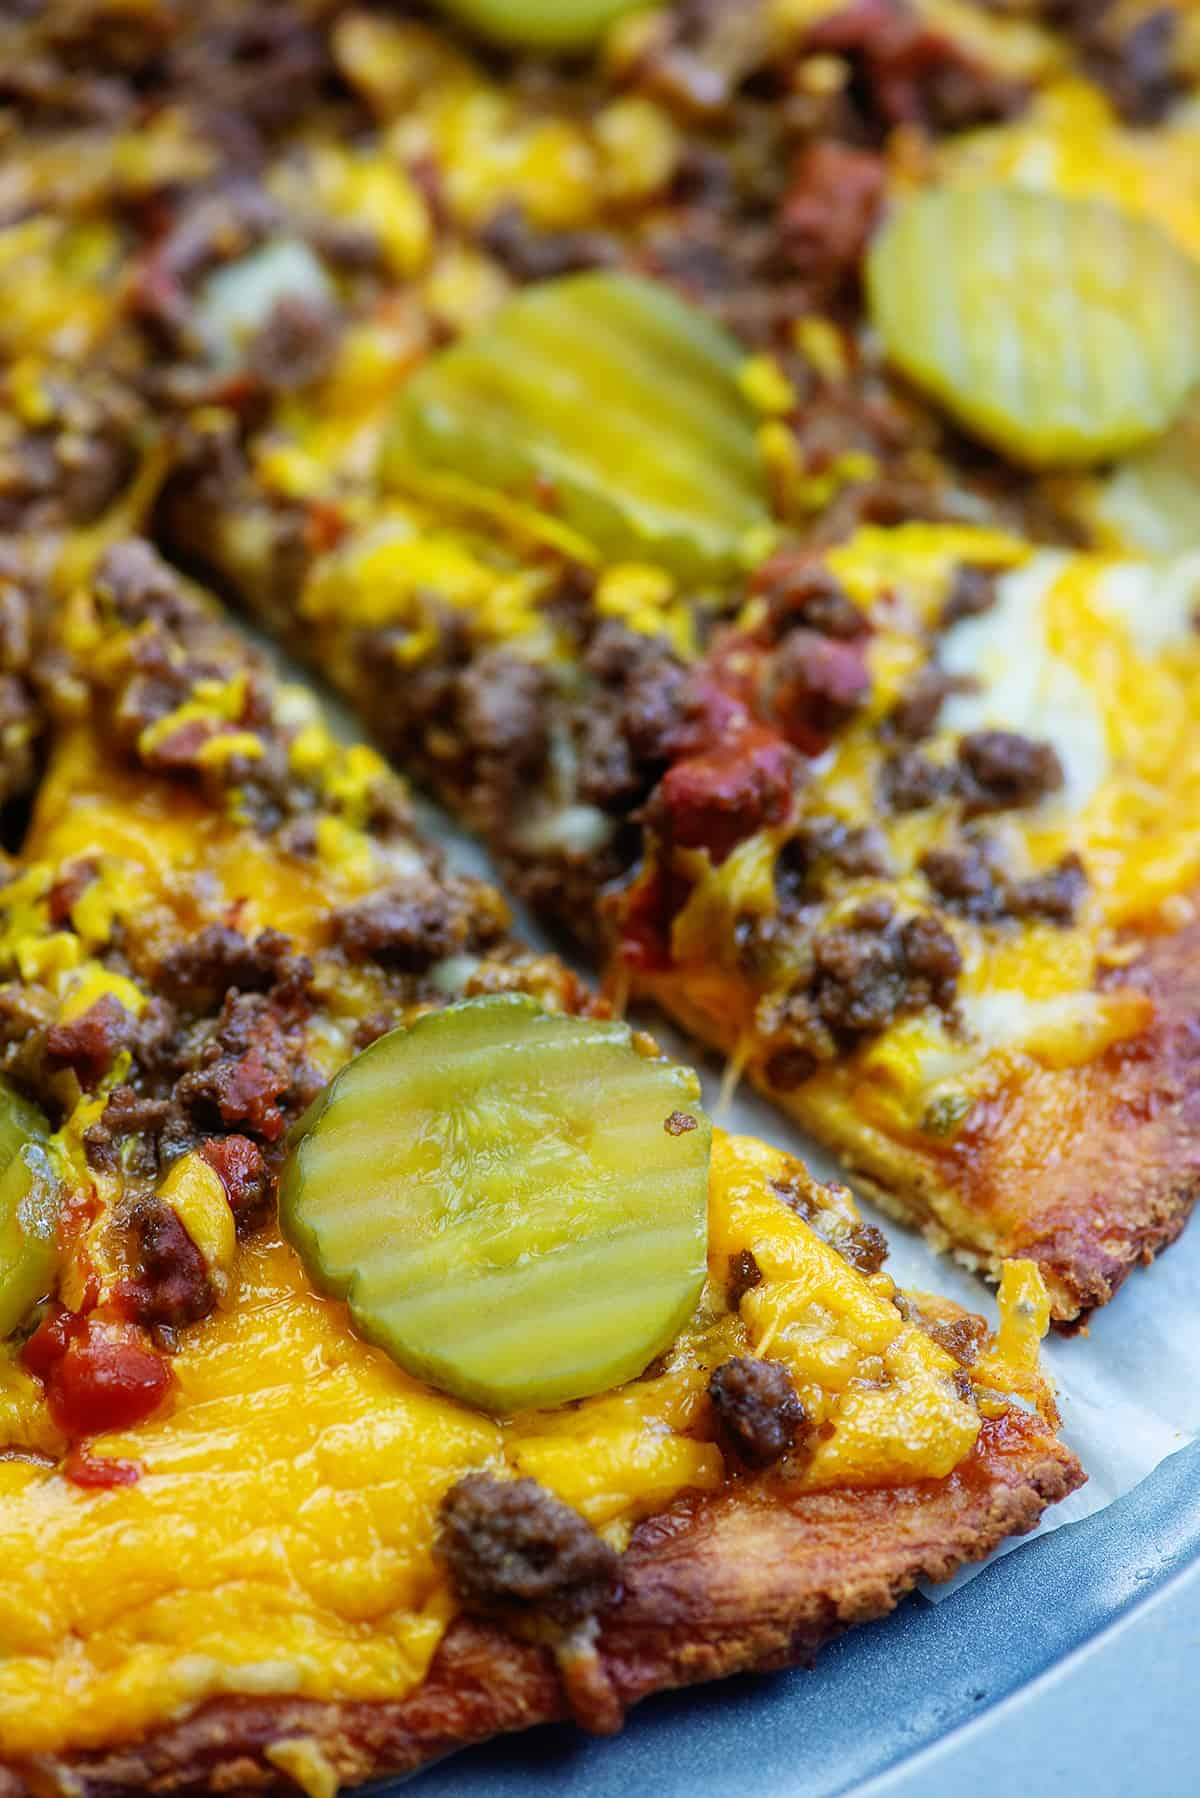 fathead pizza with ground beef, cheese, and pickles on pizza pan